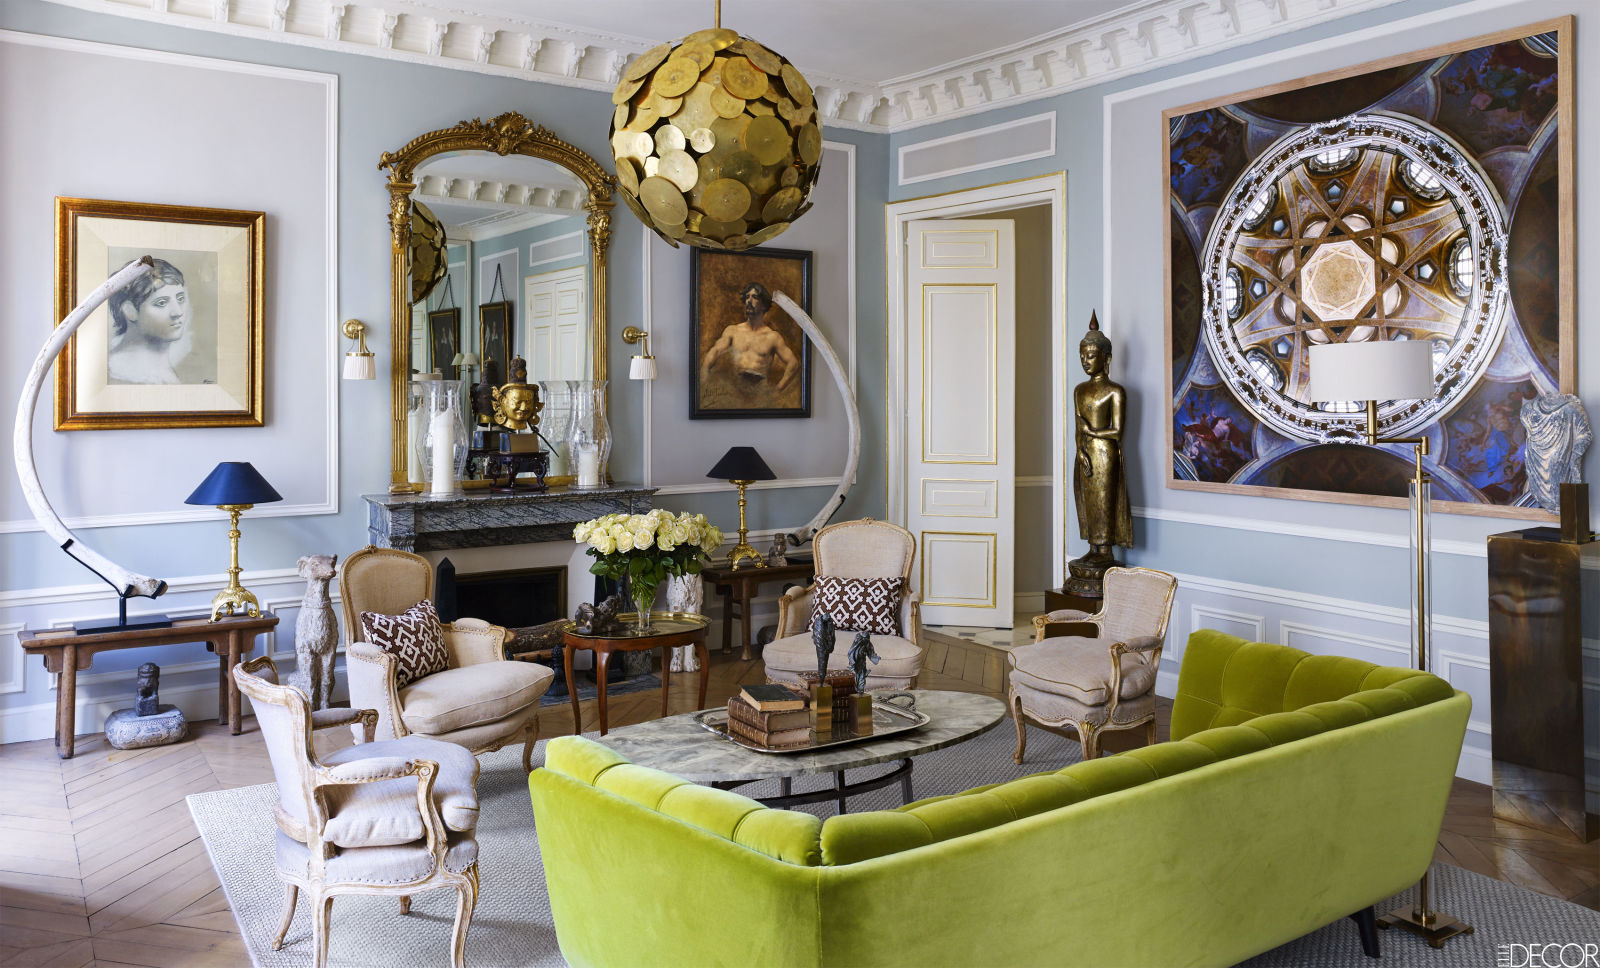 Loveisspeed House Tour East Meets West In A Sophisticated Paris Pied Terre In His